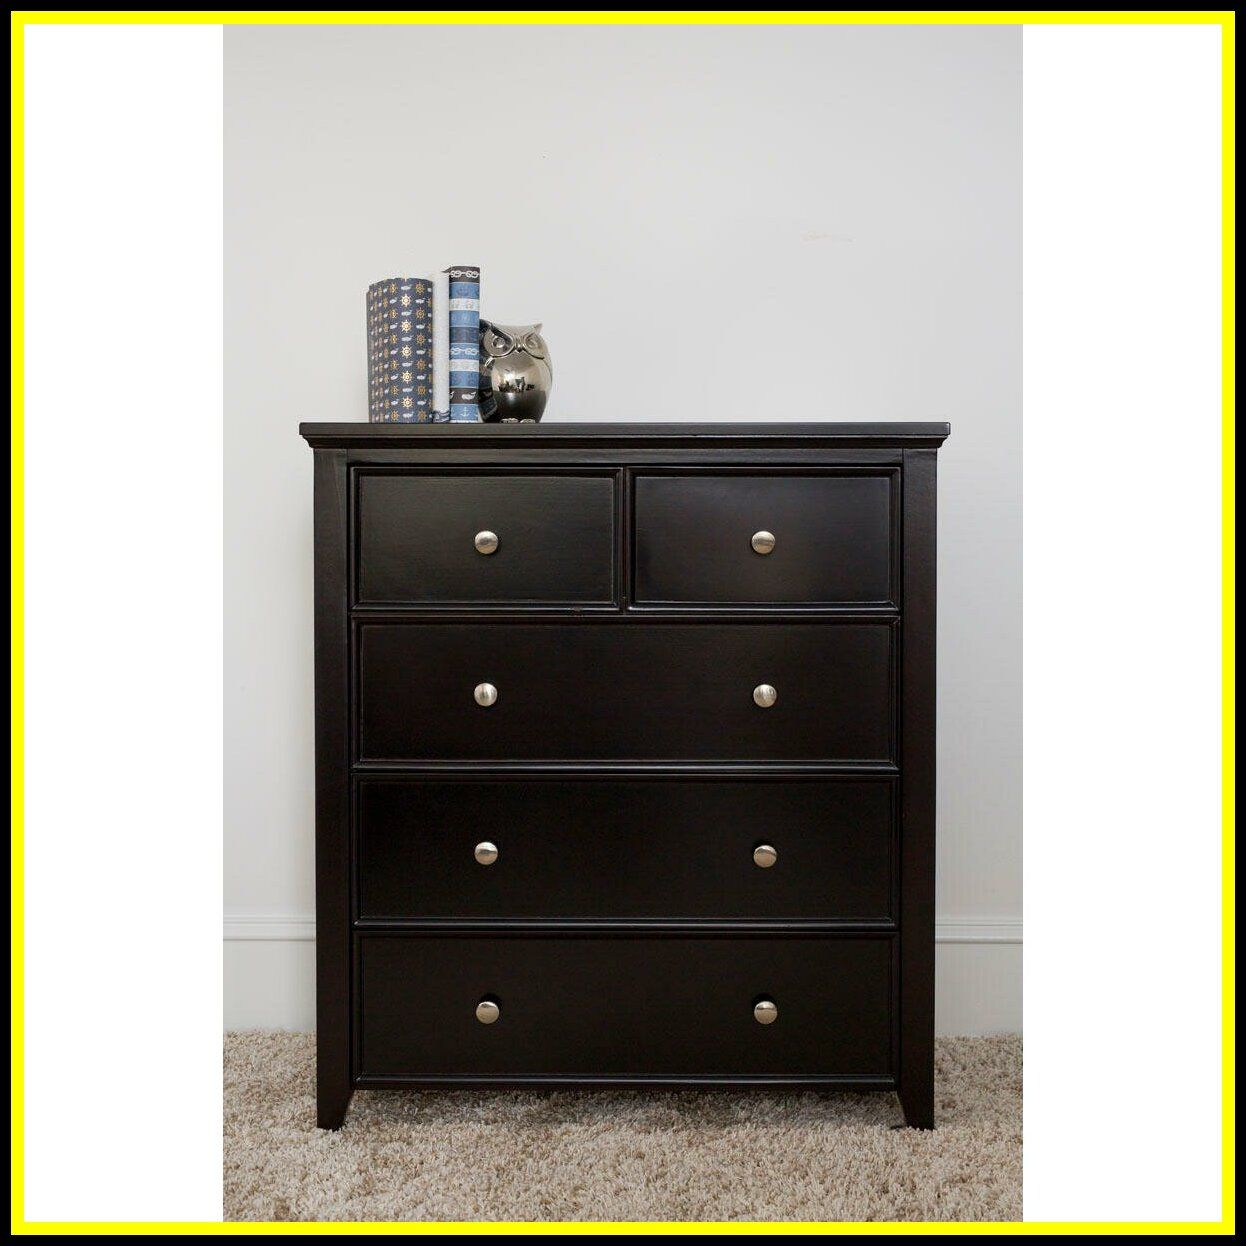 79 Reference Of Wayfair 5 Drawer Chest Of Drawers Baby Dresser Dresser As Nightstand Shoe Rack Furniture [ 1246 x 1246 Pixel ]